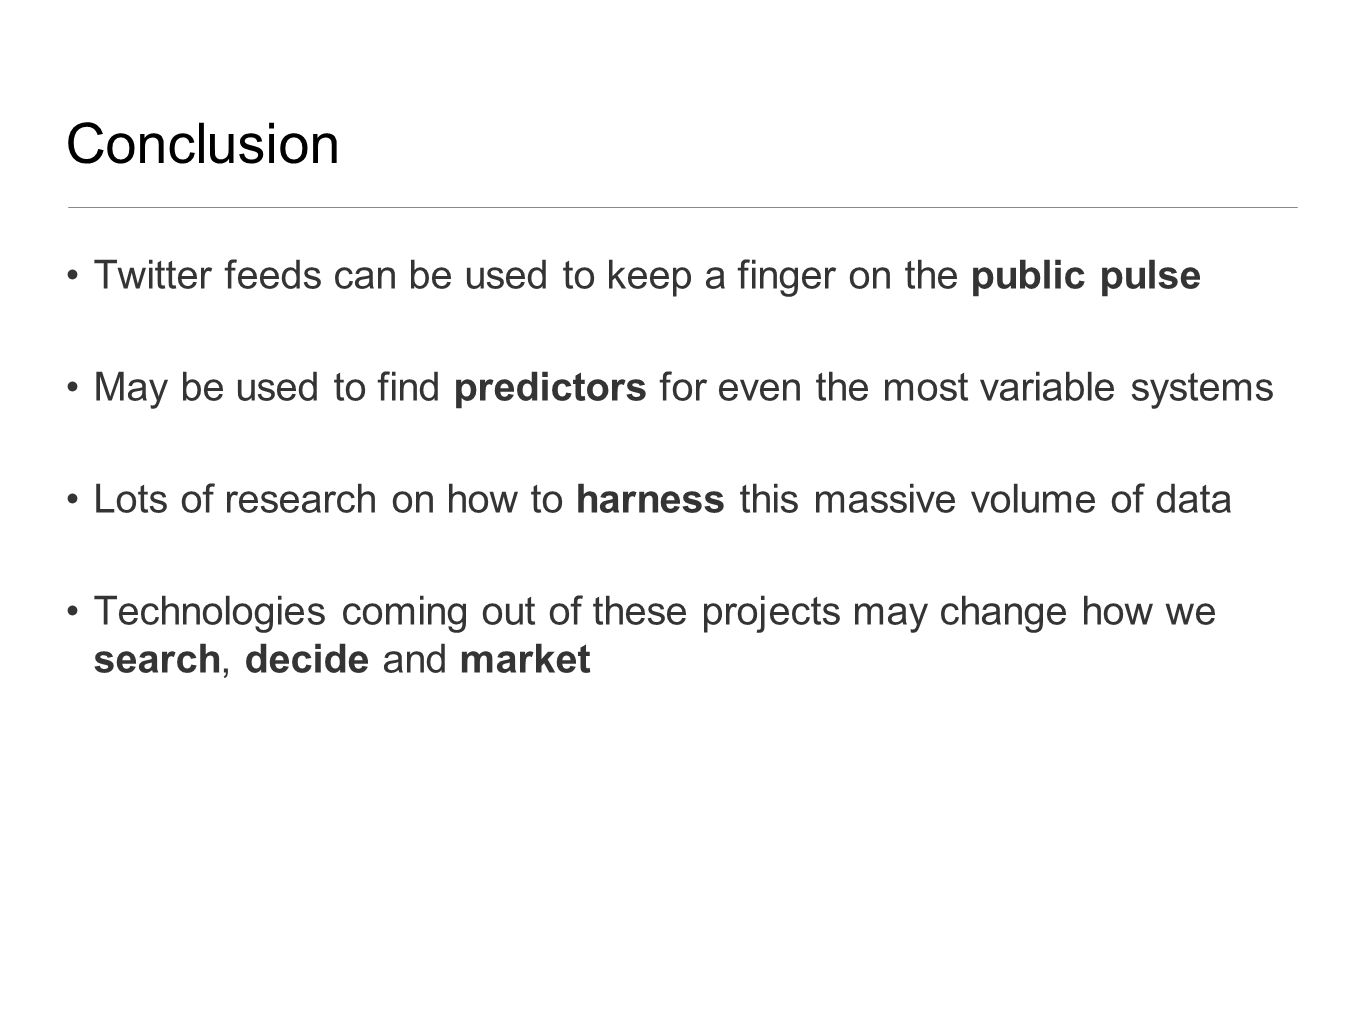 Conclusion Twitter feeds can be used to keep a finger on the public pulse May be used to find predictors for even the most variable systems Lots of research on how to harness this massive volume of data Technologies coming out of these projects may change how we search, decide and market